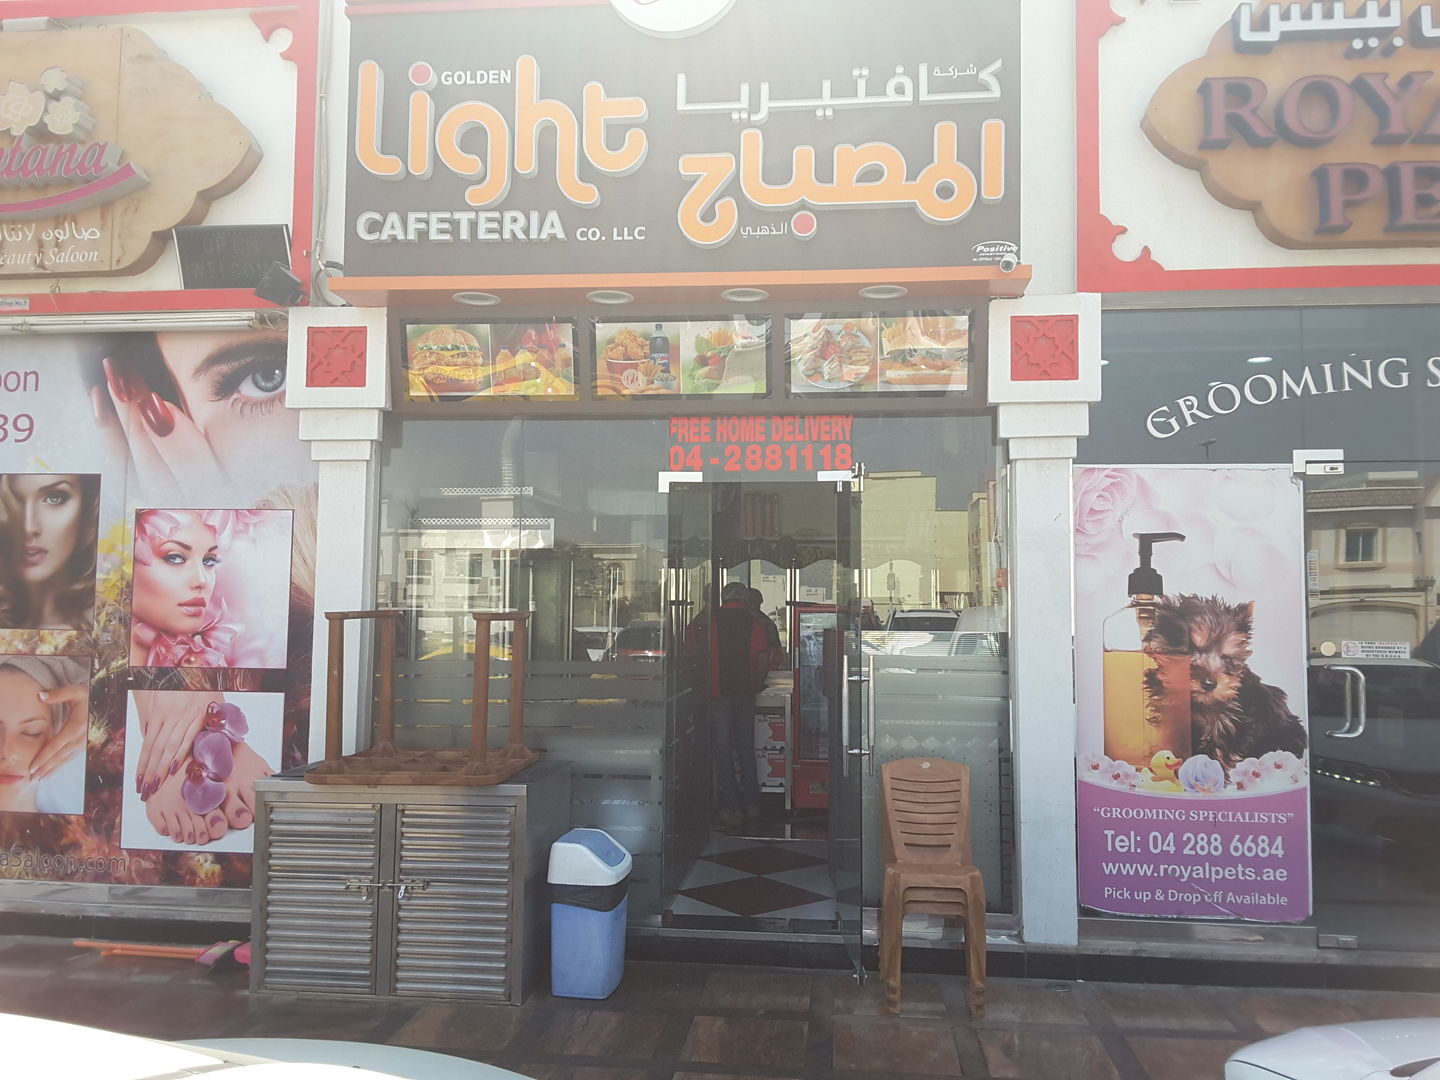 HiDubai-business-golden-light-cafeteria-co-food-beverage-cafeterias-mirdif-dubai-2